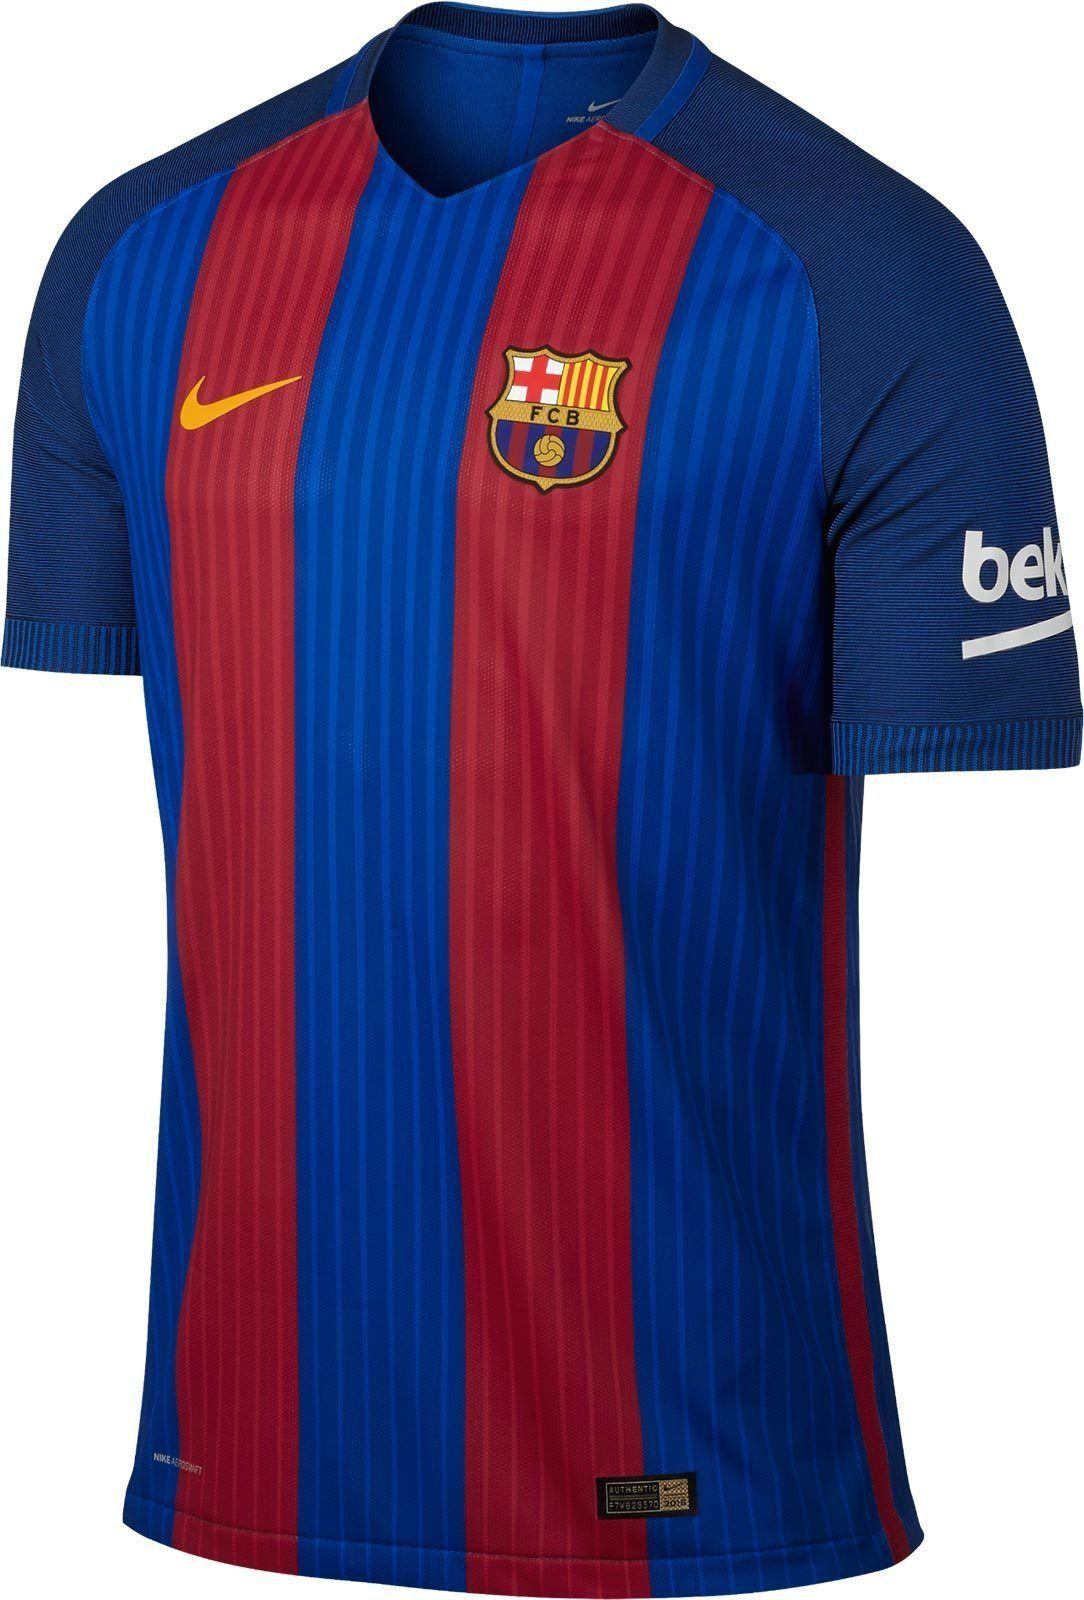 52794c22151 Nike fc barcelona authentic vapor match home jersey 2016 17